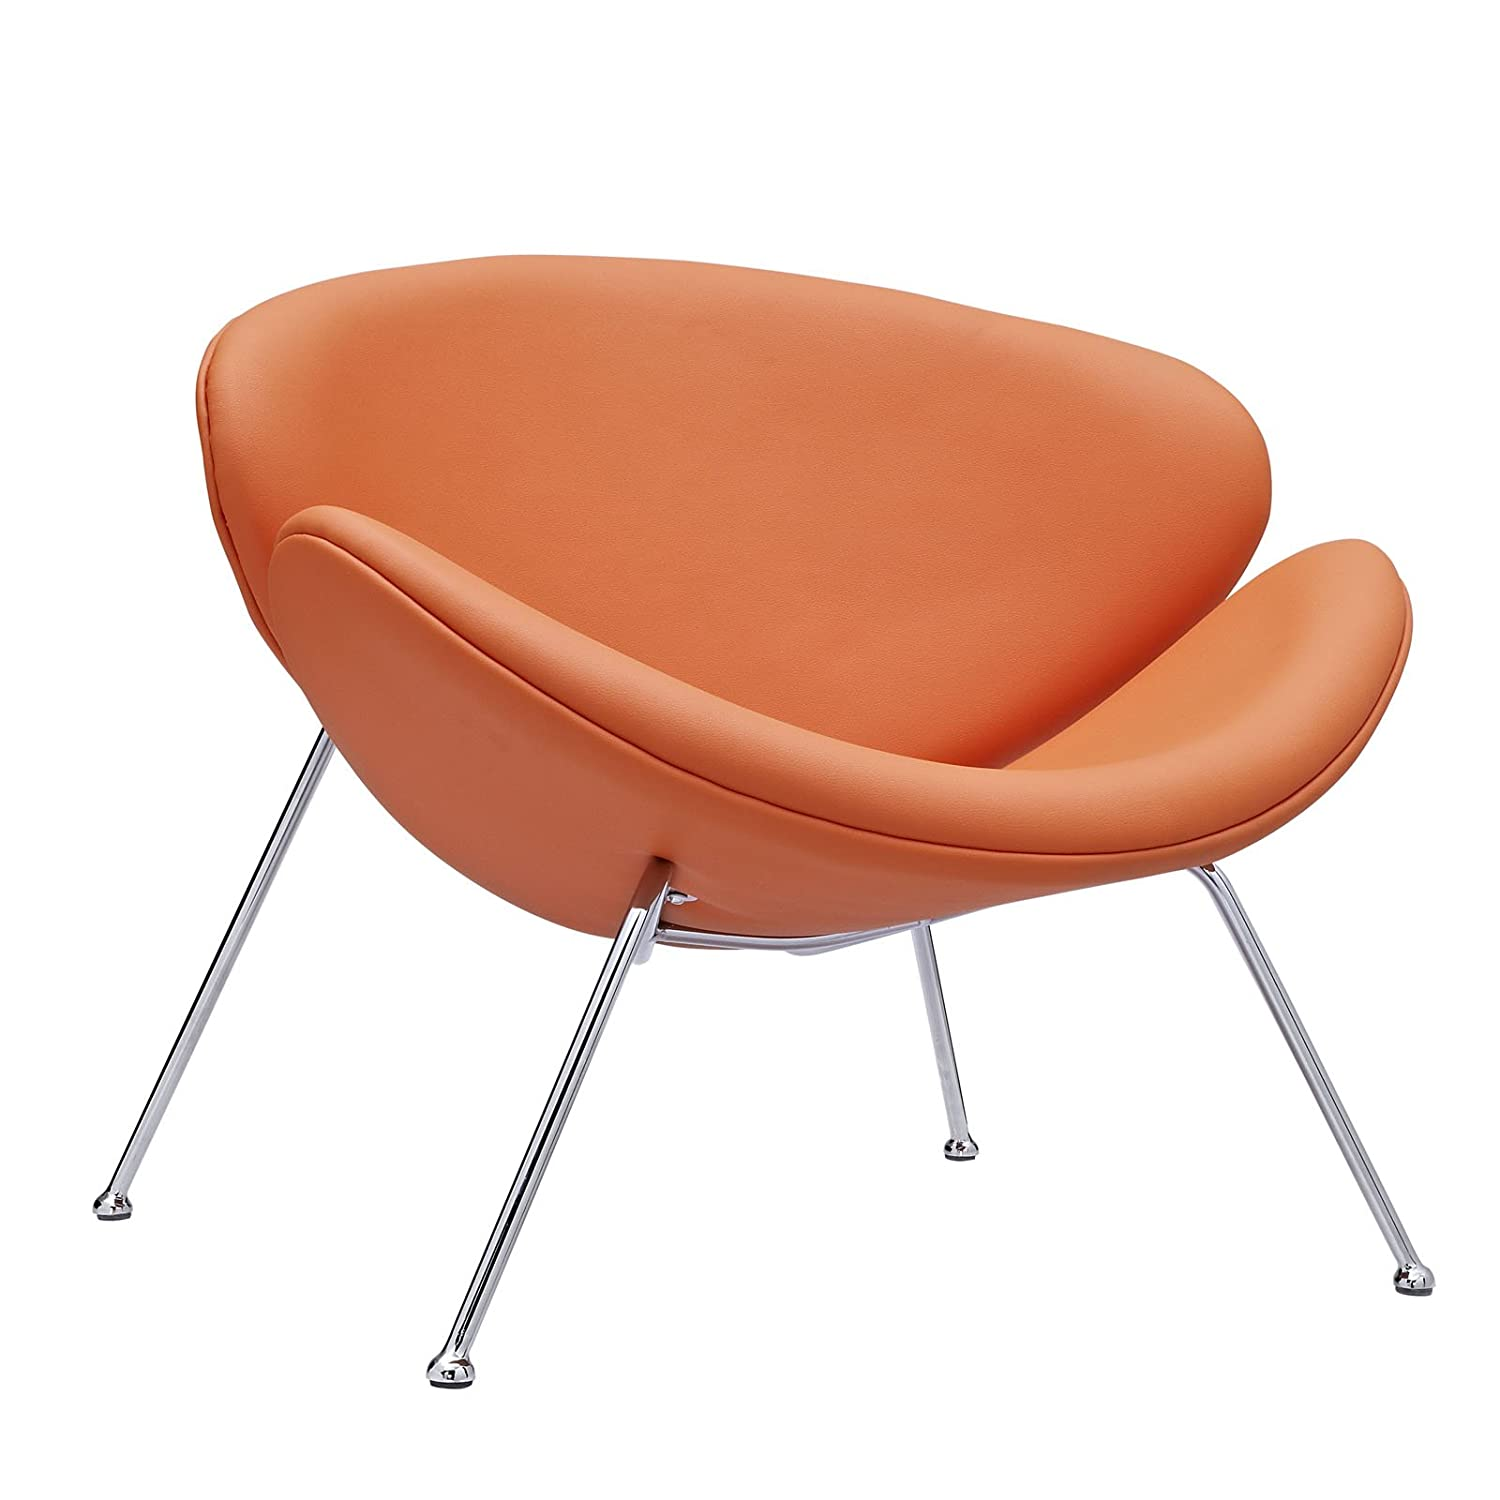 amazoncom modway nutshell midcentury style lounge chair in orange vinylorange kitchen u0026 dining